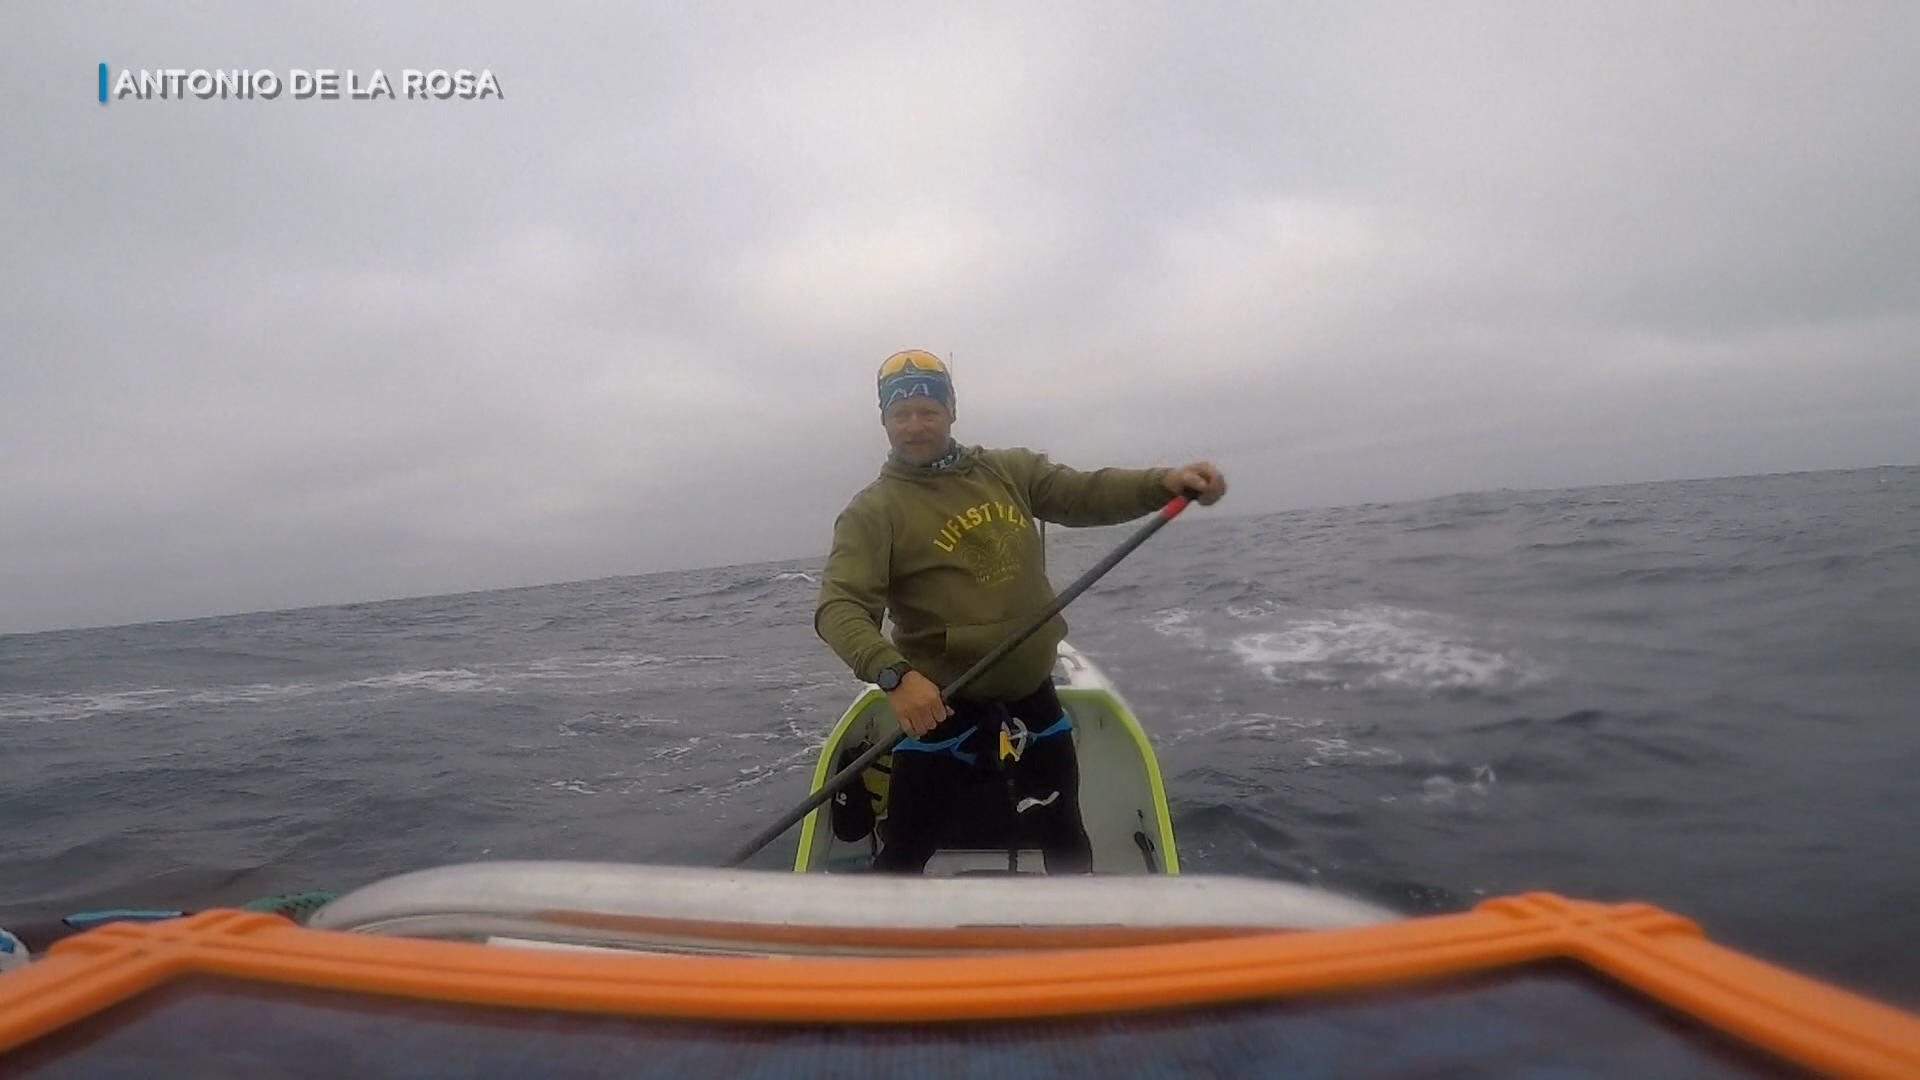 Spaniard becomes first person to paddle board Pacific Ocean